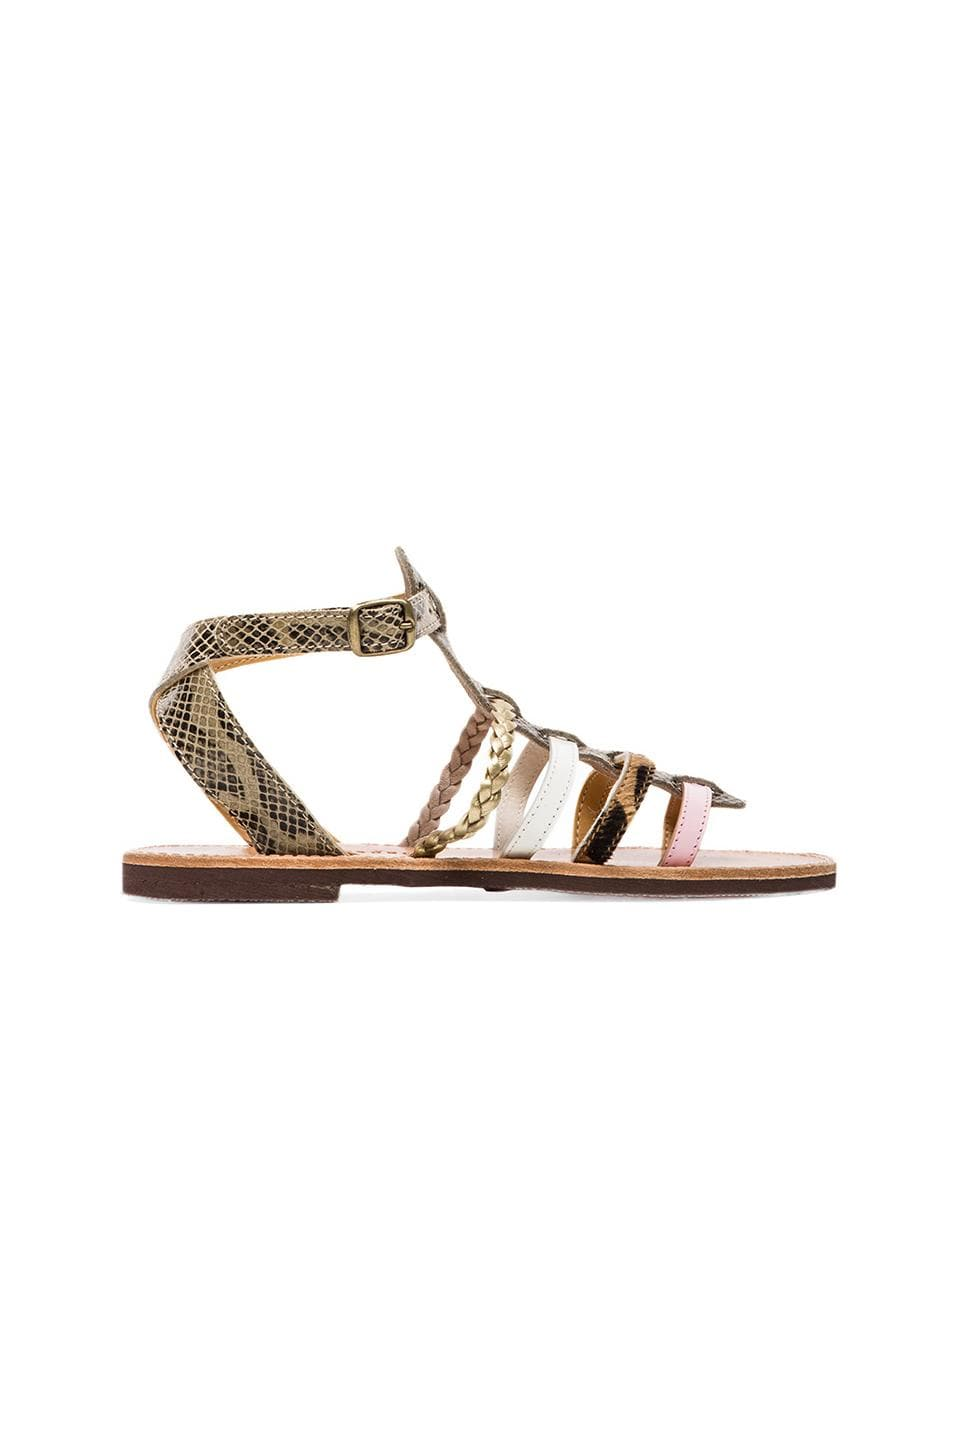 isapera Paparouna Gladiator with Calf Fur in Pink Mix